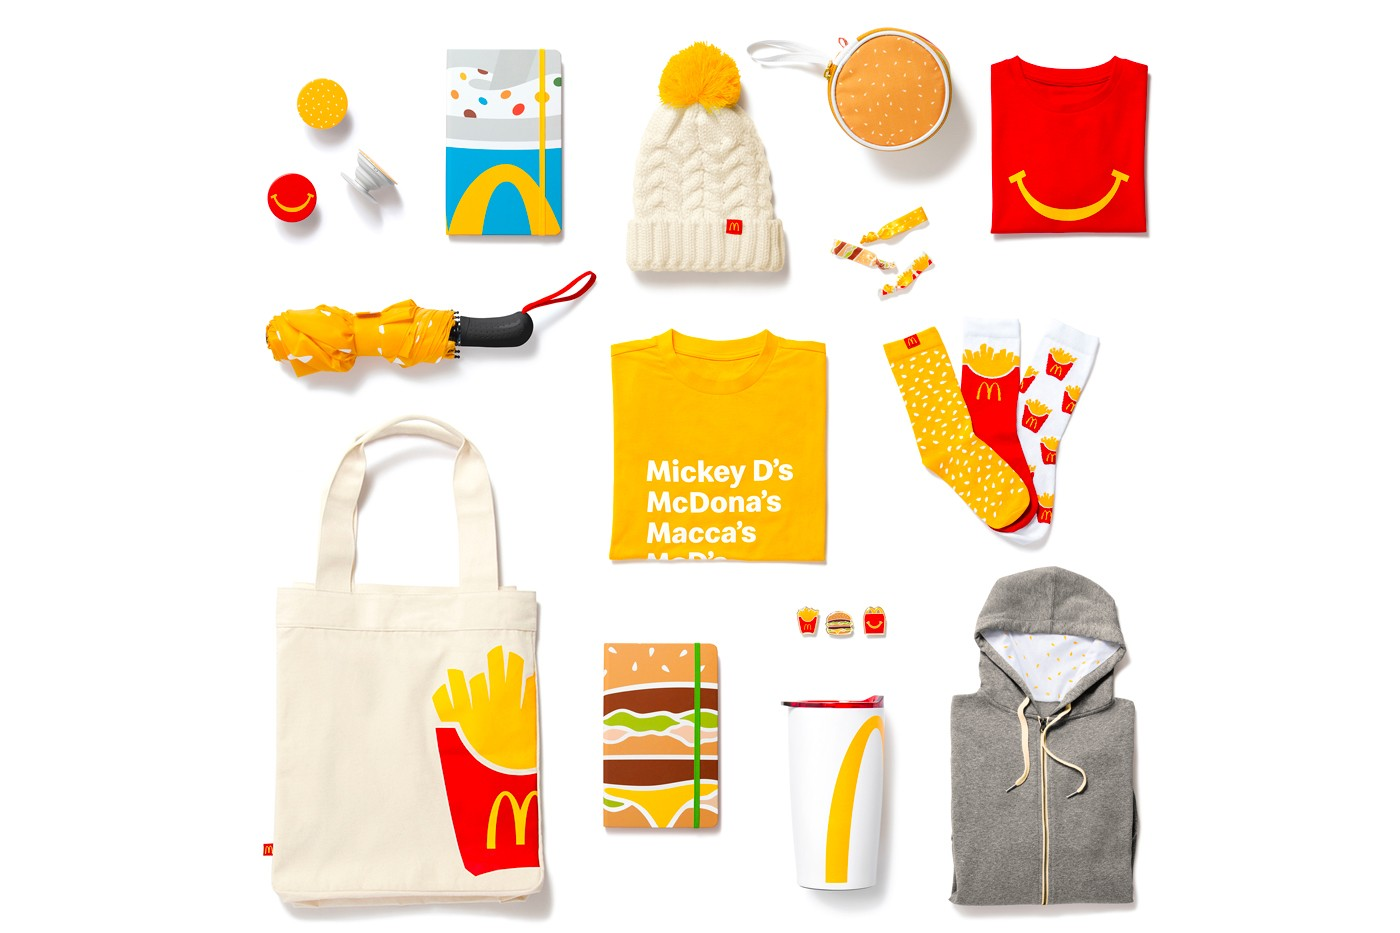 mcdonalds golden arches unlimited merchandise shop launch holiday items